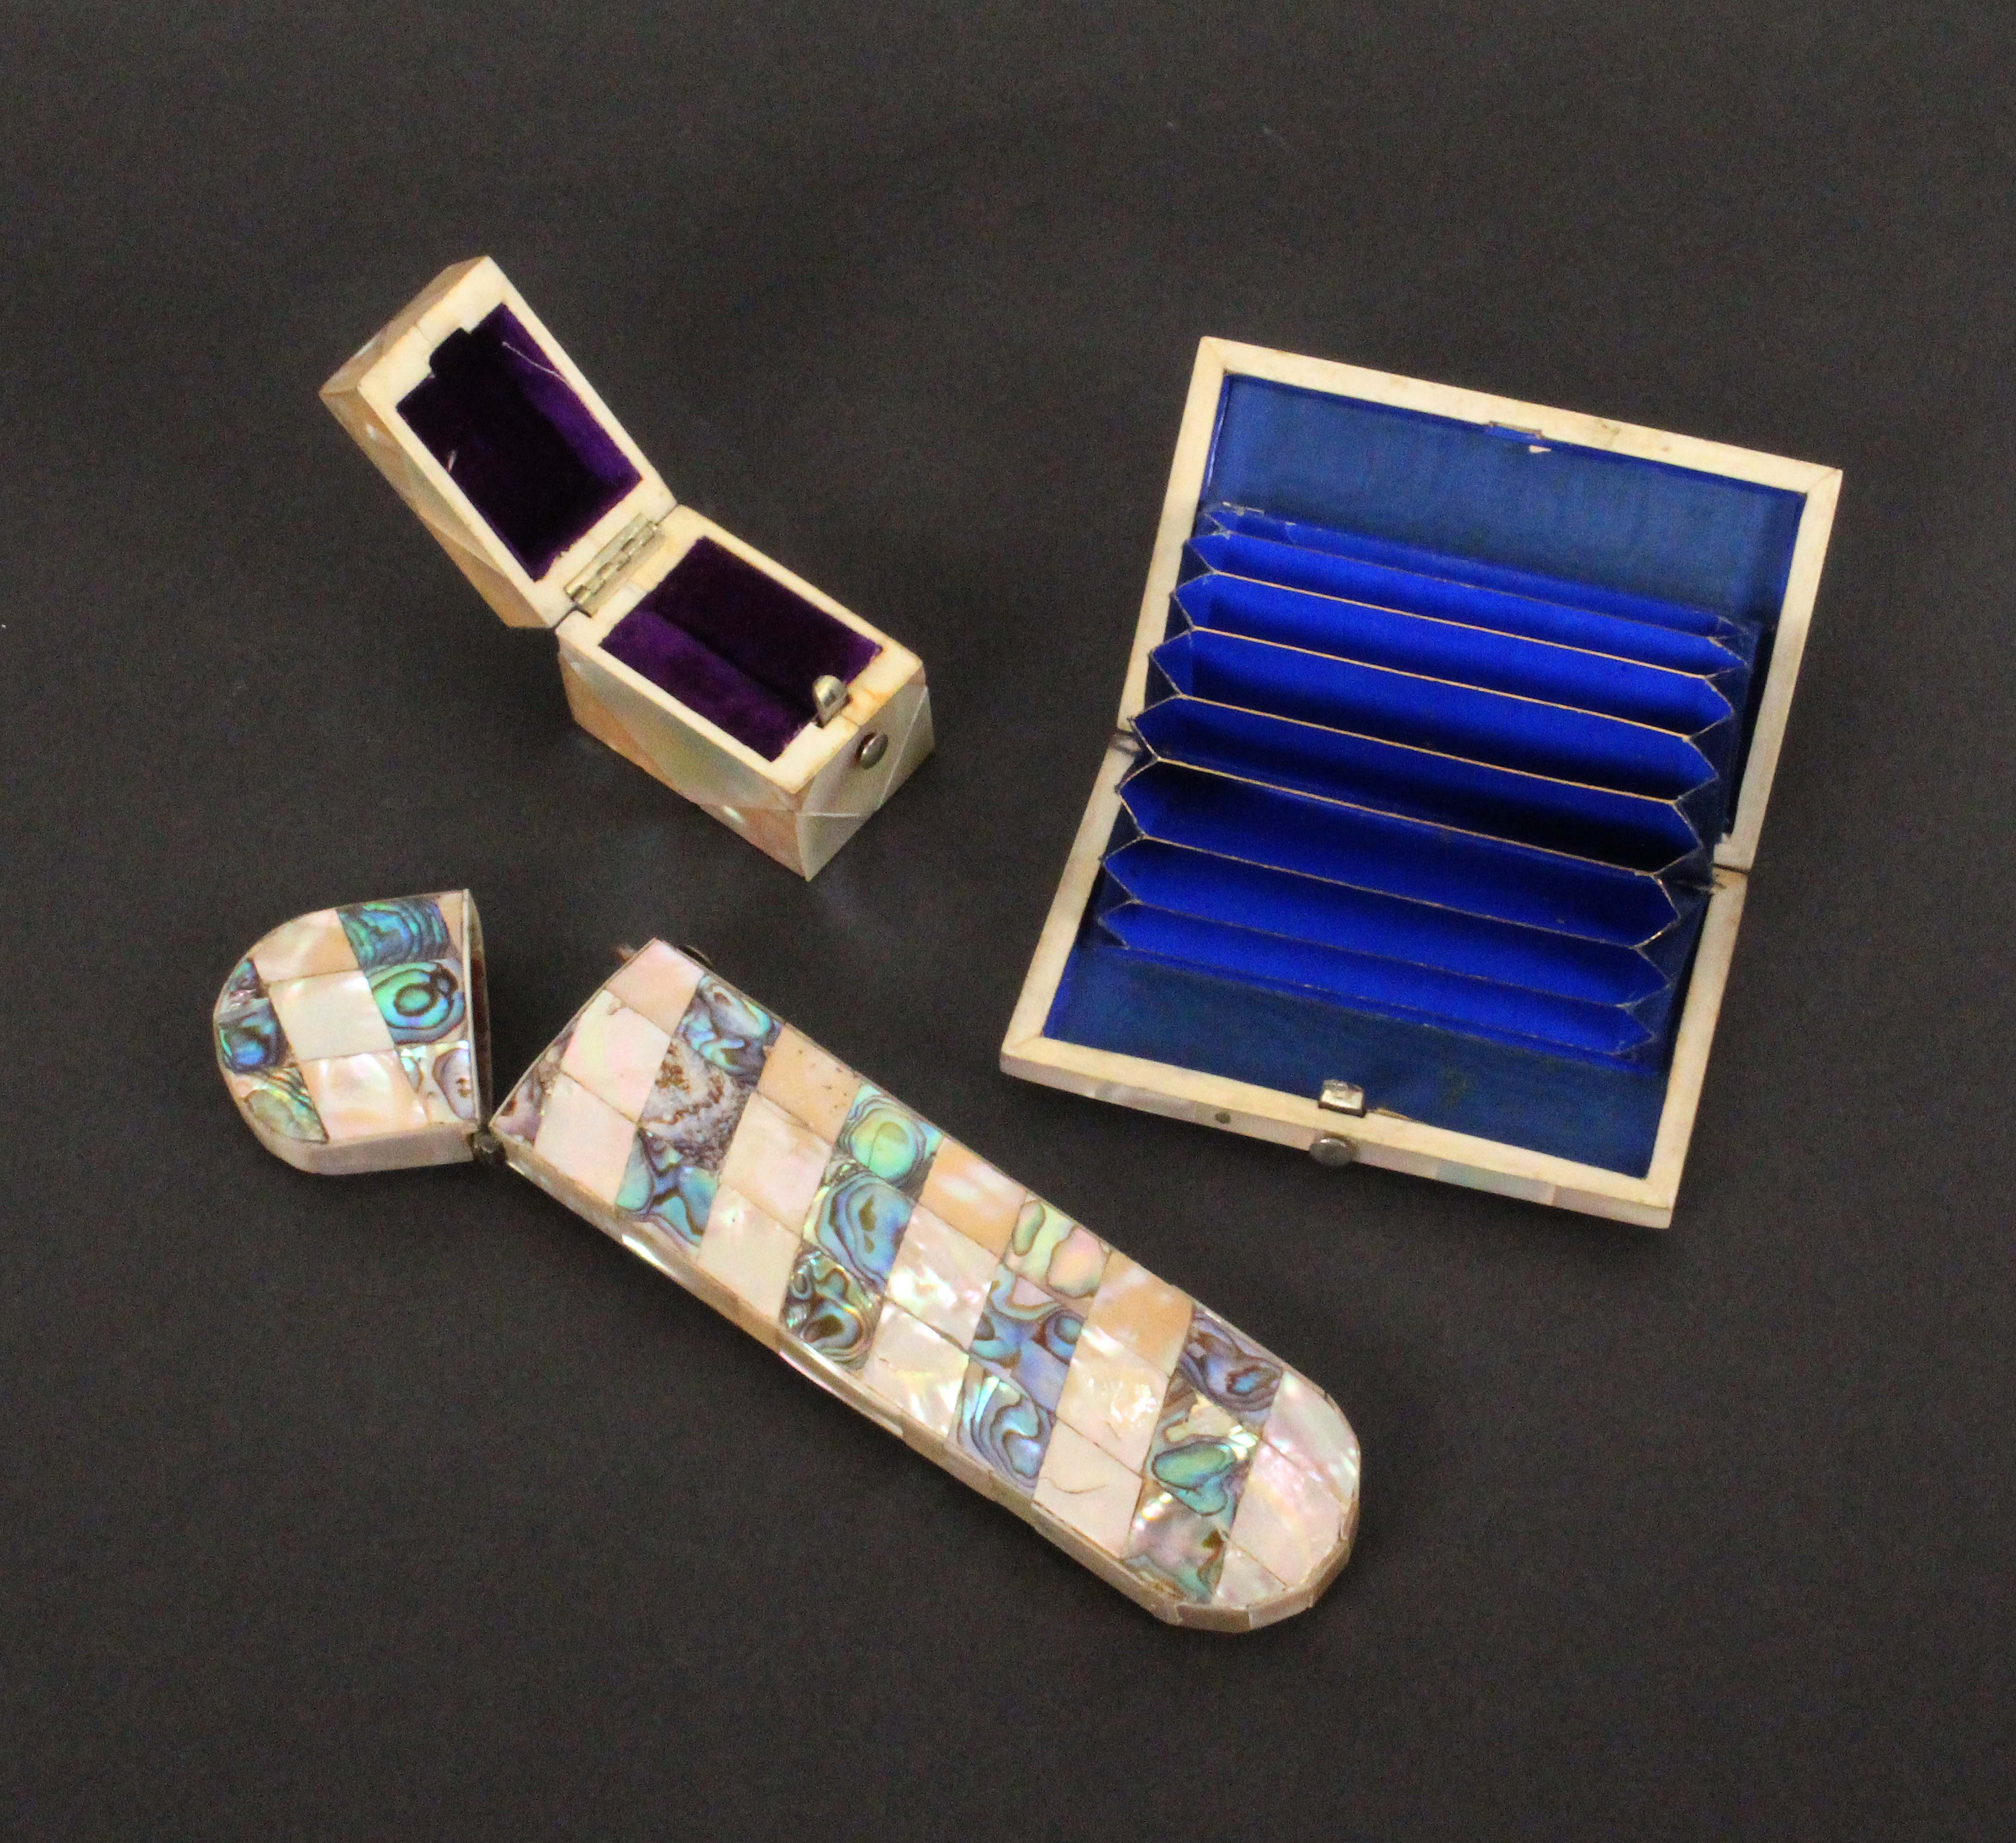 Three mother of pearl boxes, comprising a spectacle case with spiral bands of abalone shell, 15. - Image 2 of 2